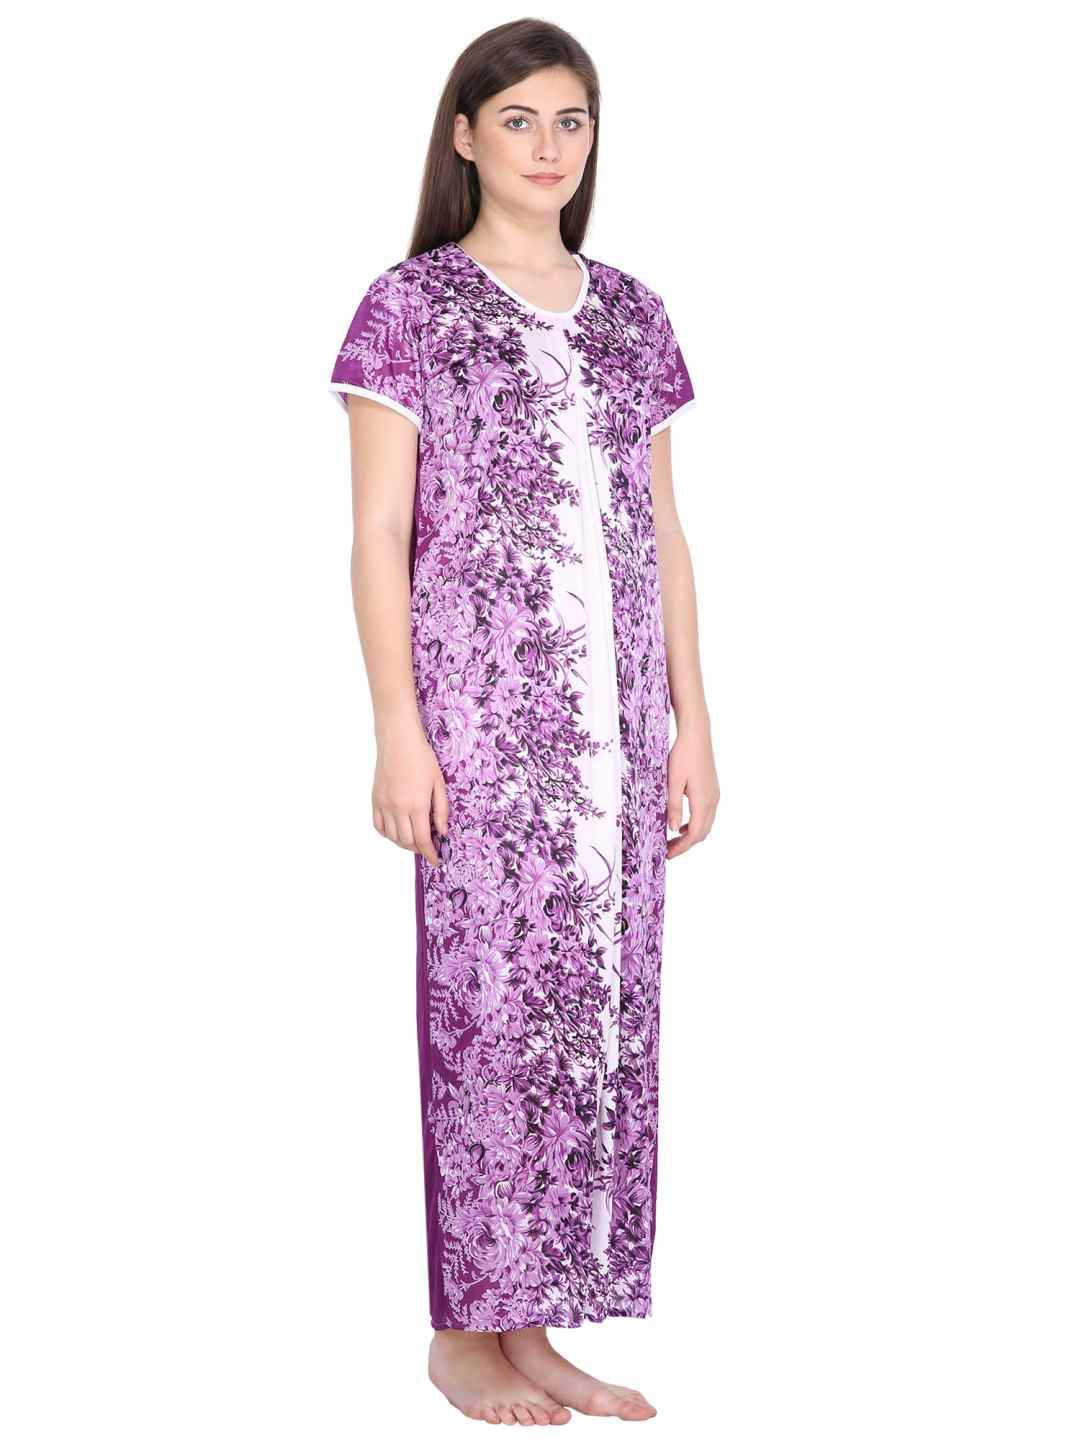 Klamotten Women's Printed Long Nightdress 284P188